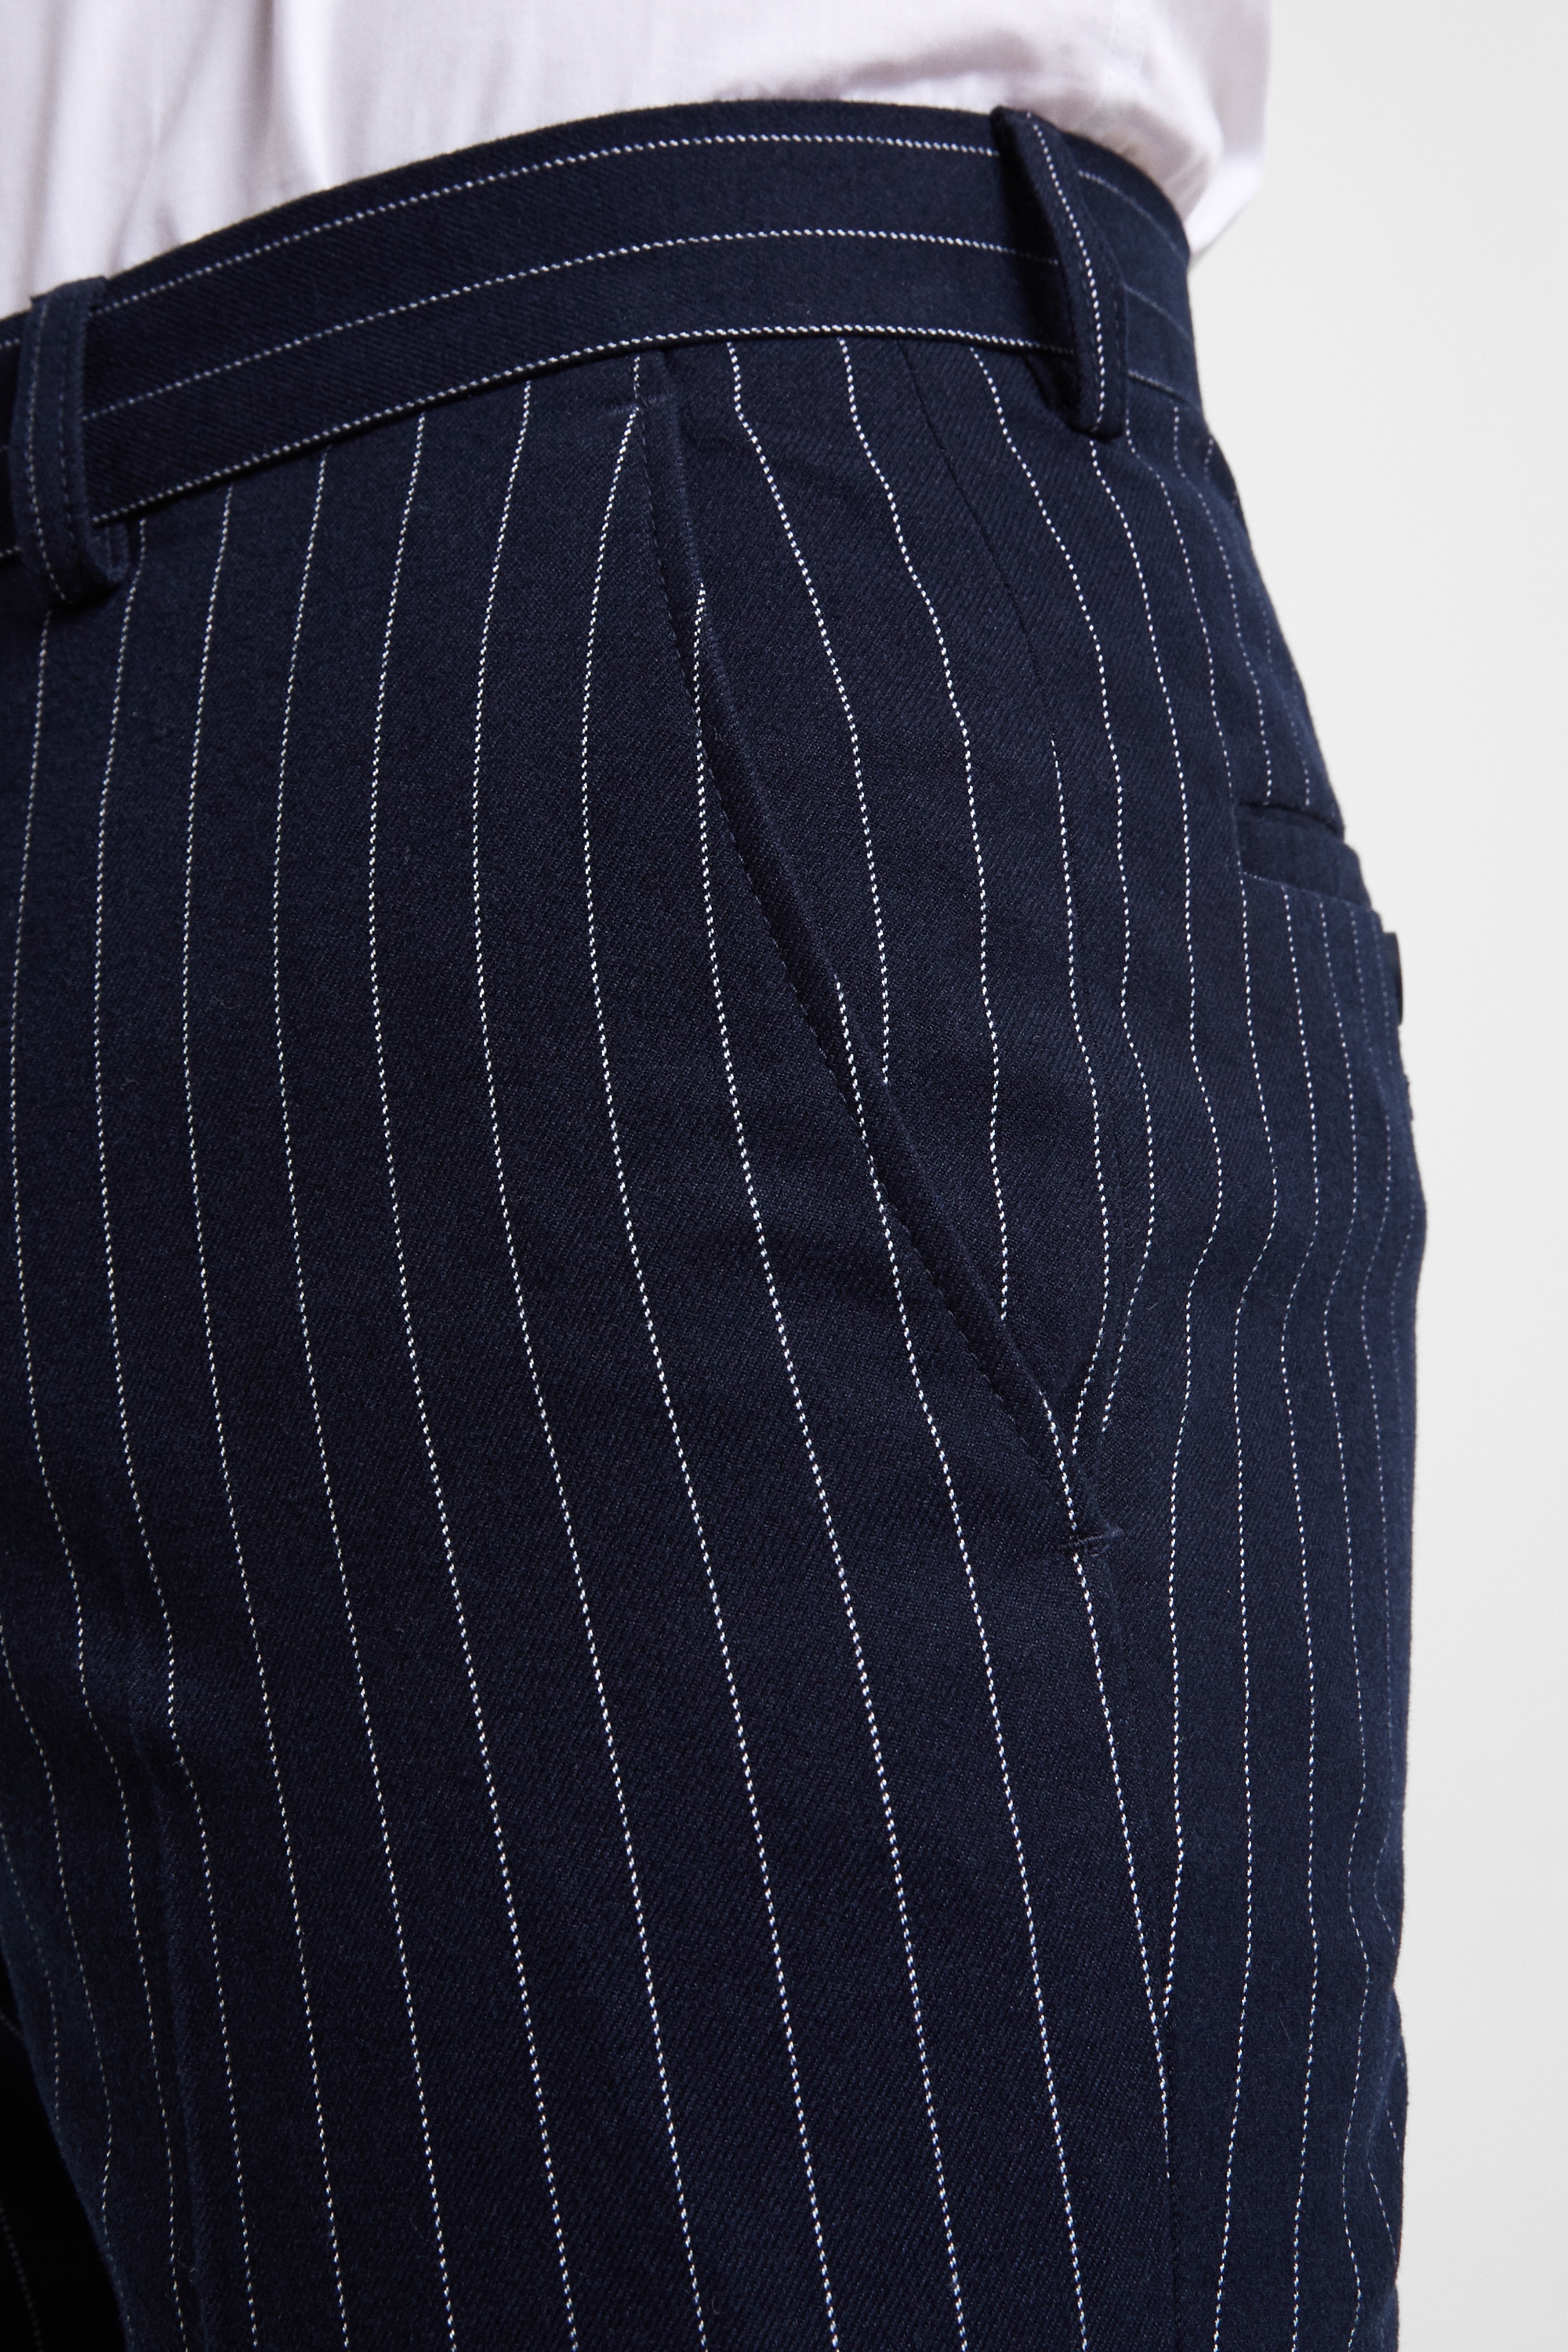 42c471d6acd Moss London Mens Trousers Skinny Fit Navy Chalk Stripe Cropped Pants Stretch